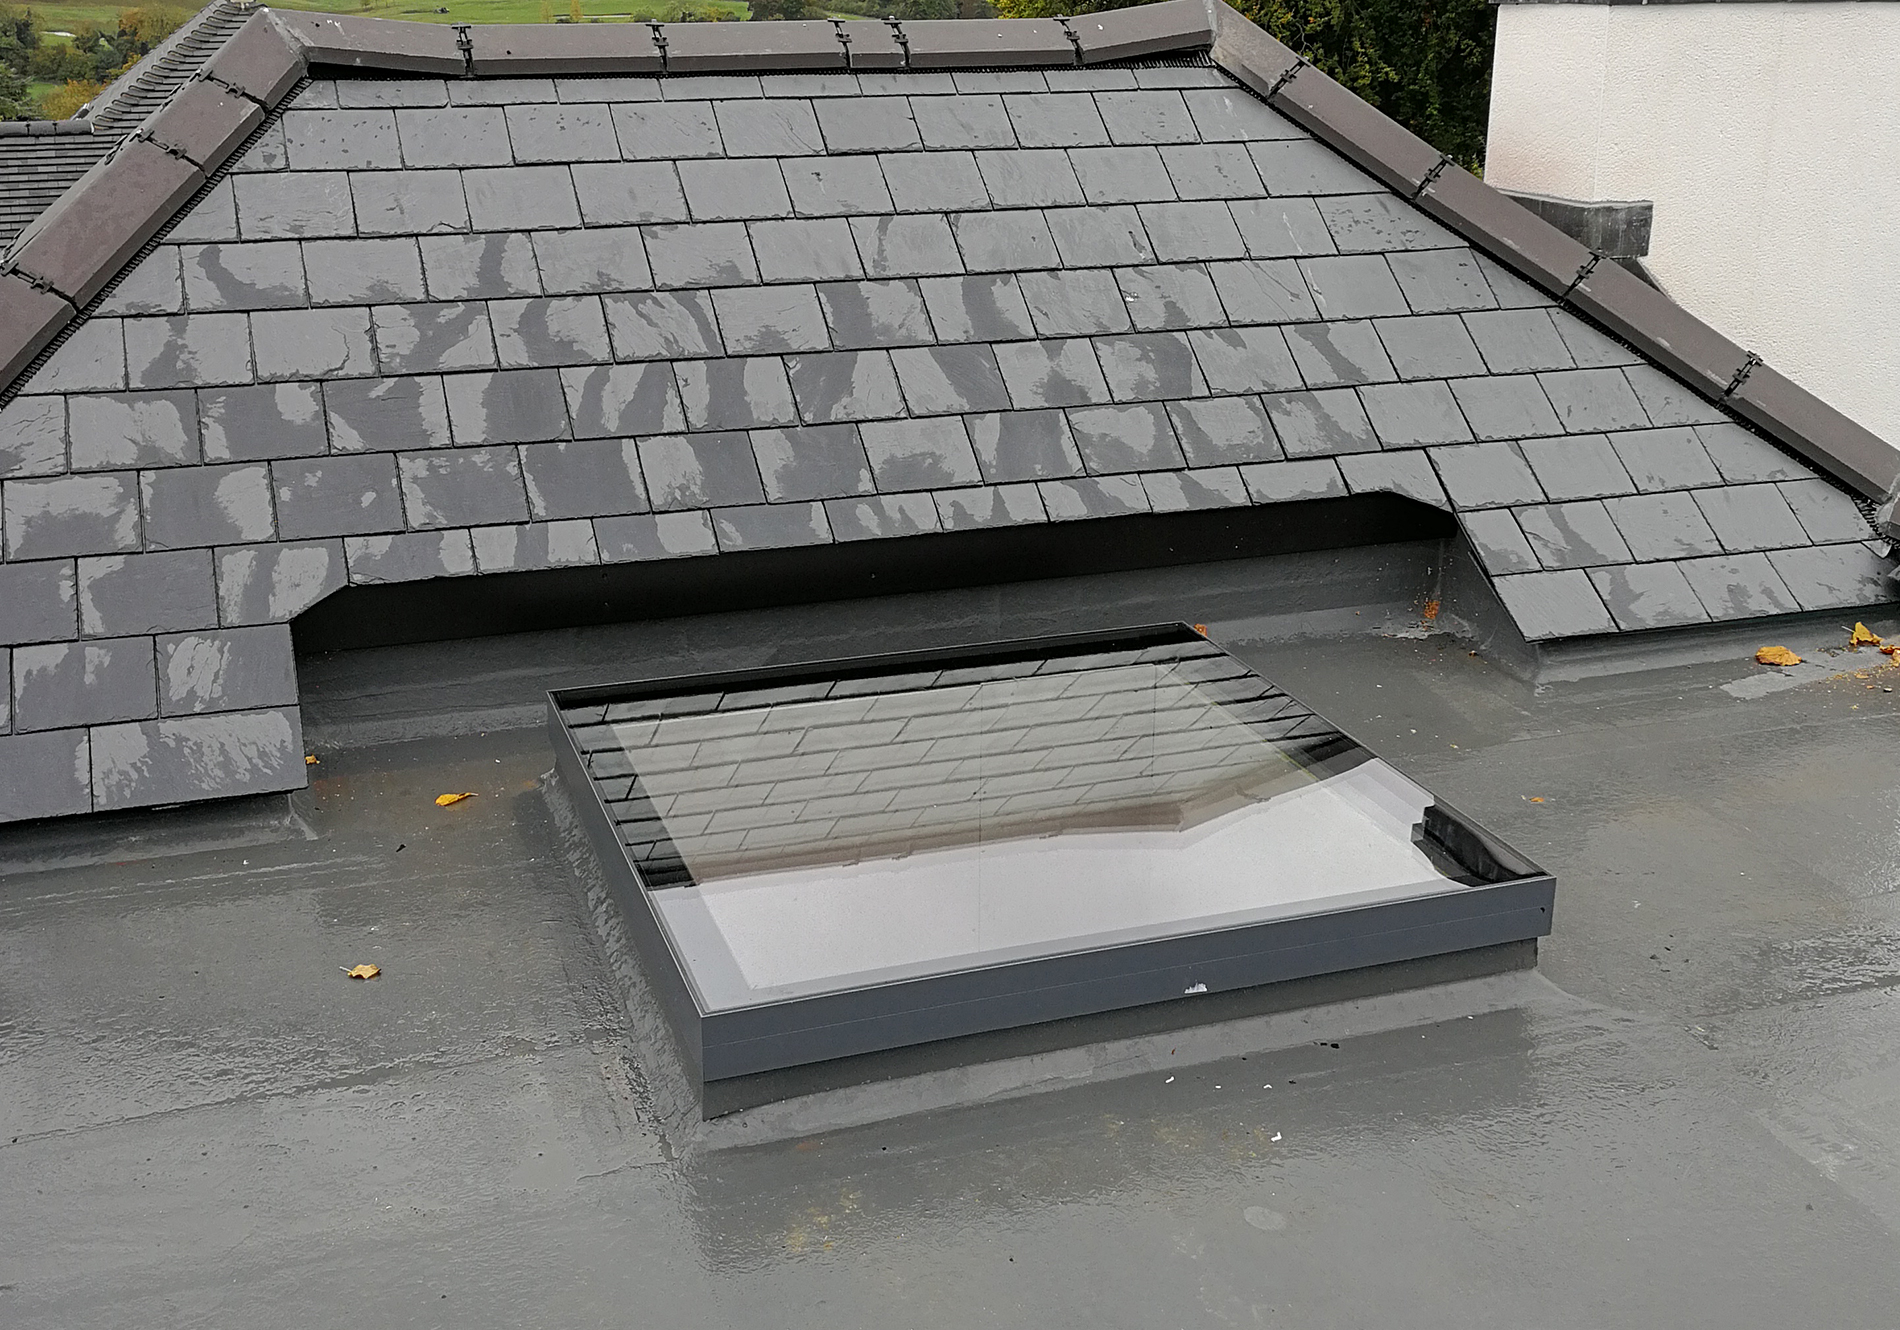 leatherhead exact flat roof light 03